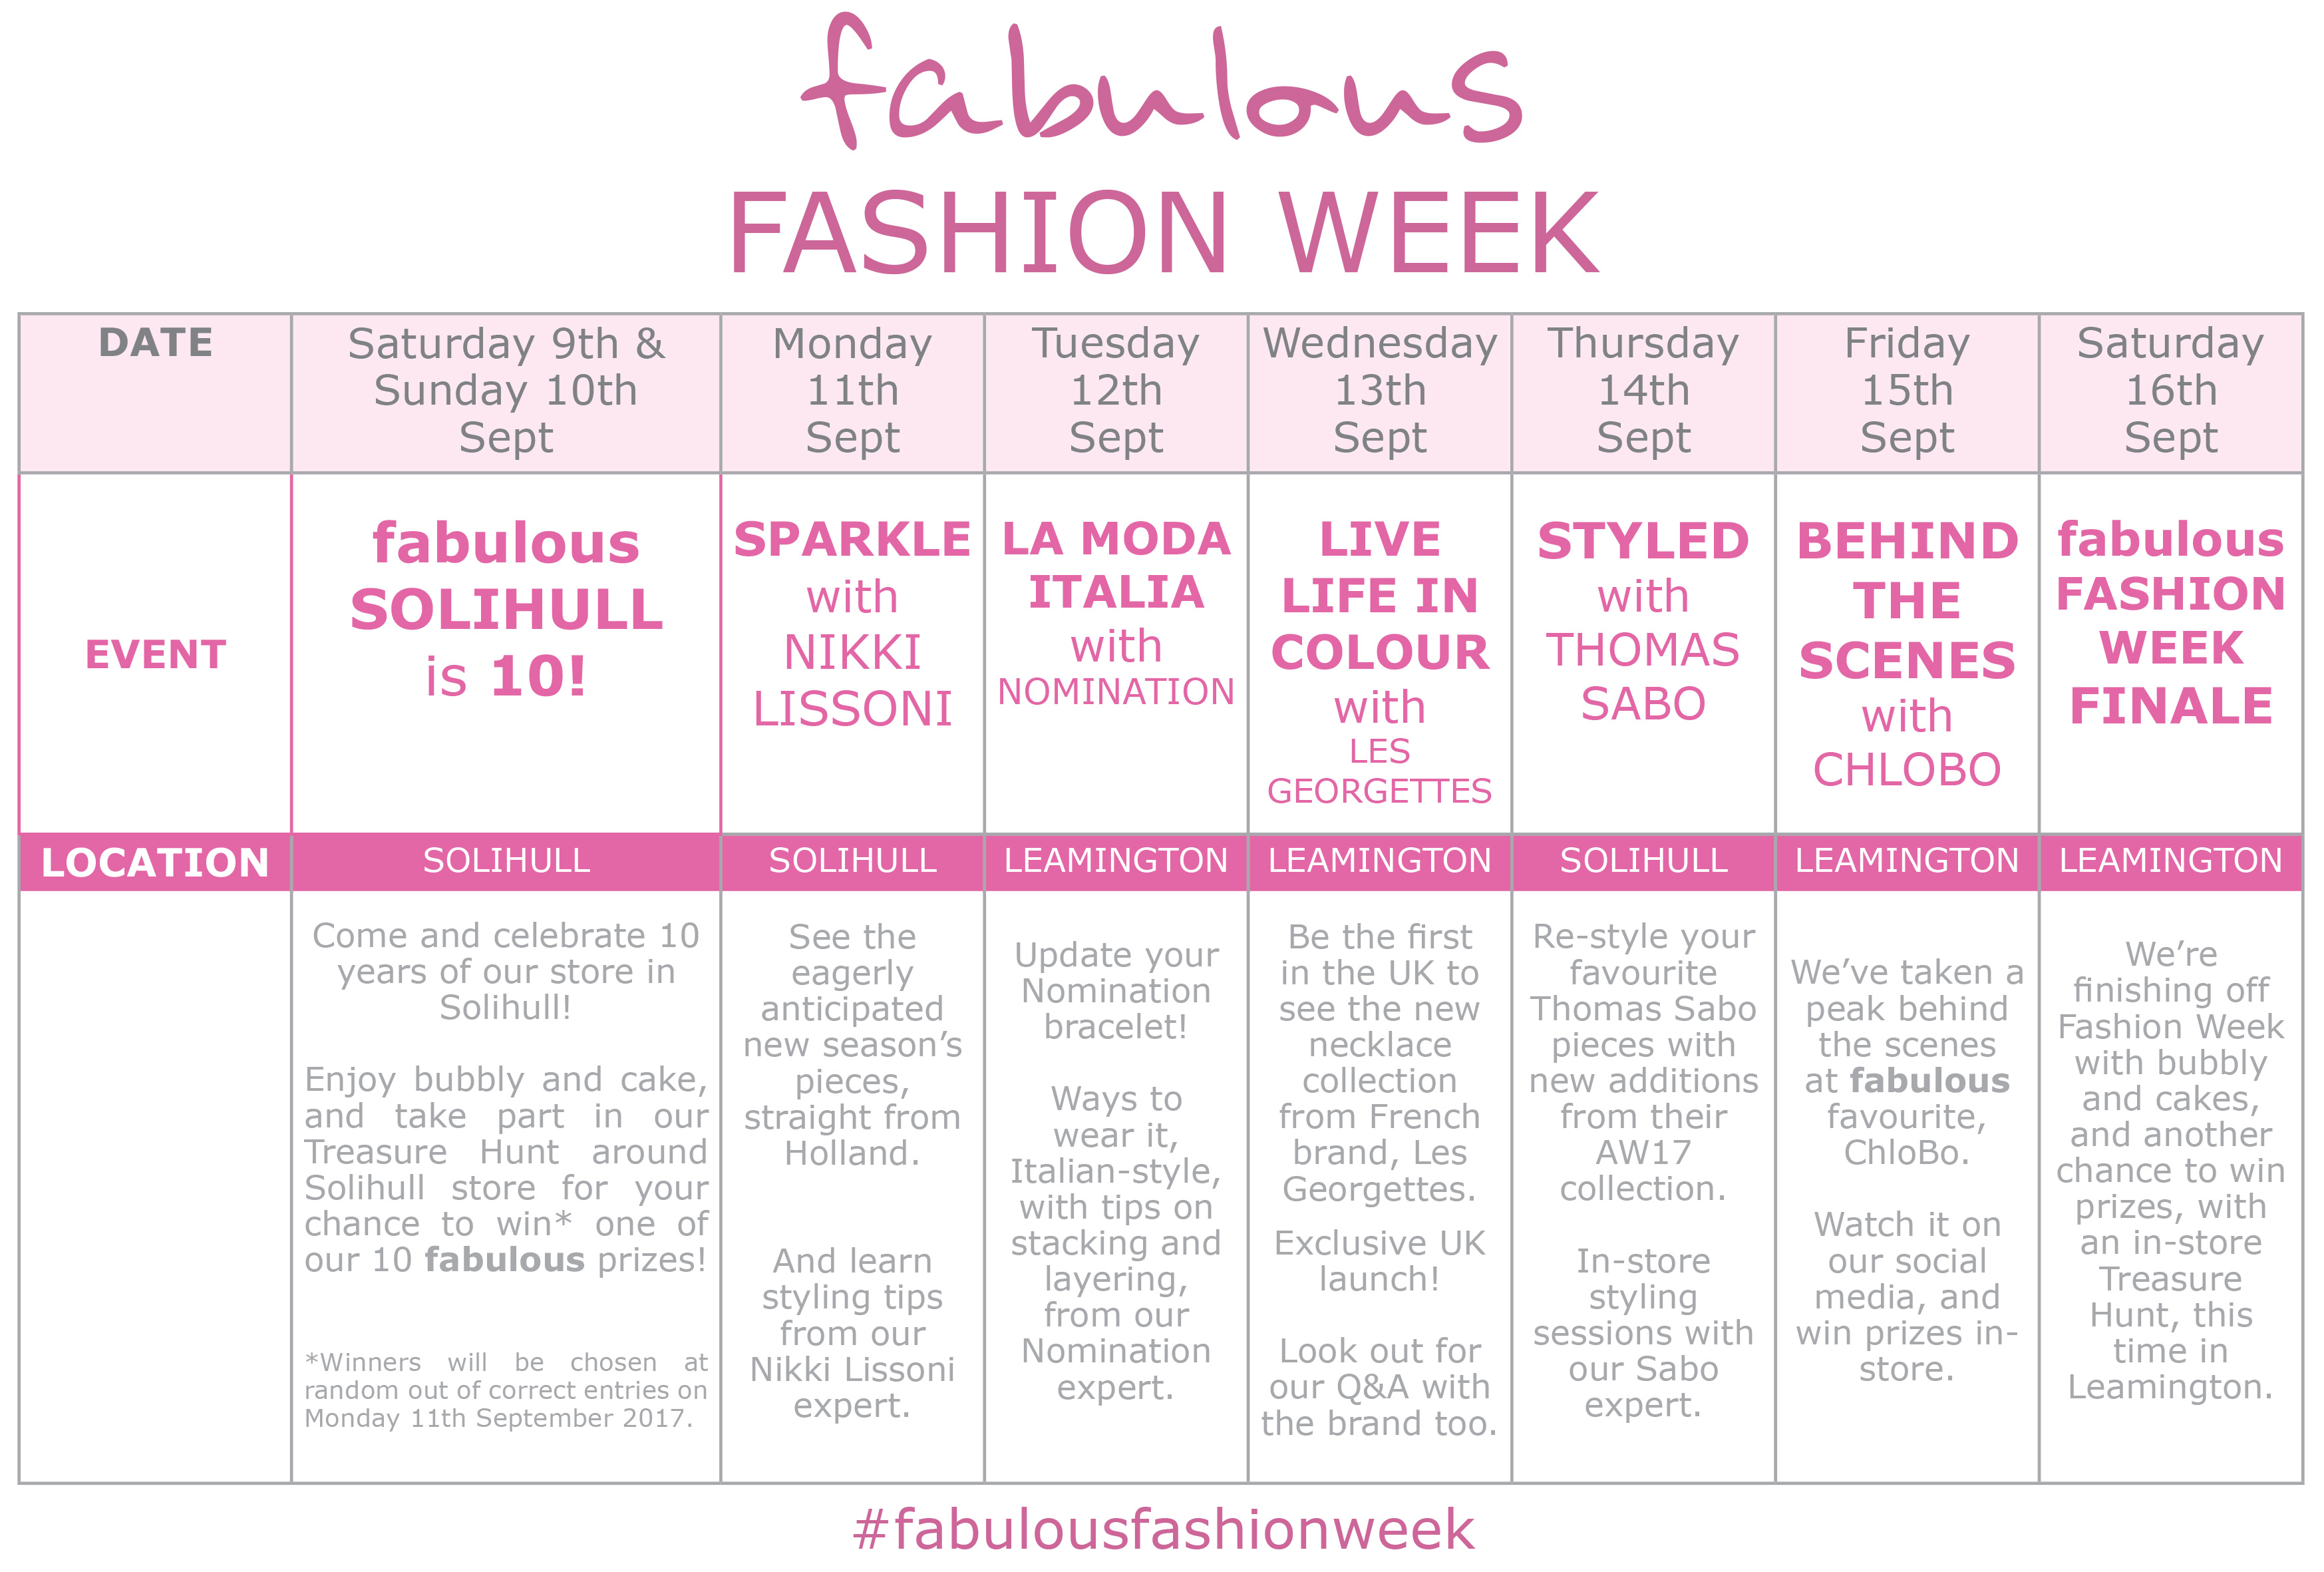 fabulous Fashion Week Events Calendar